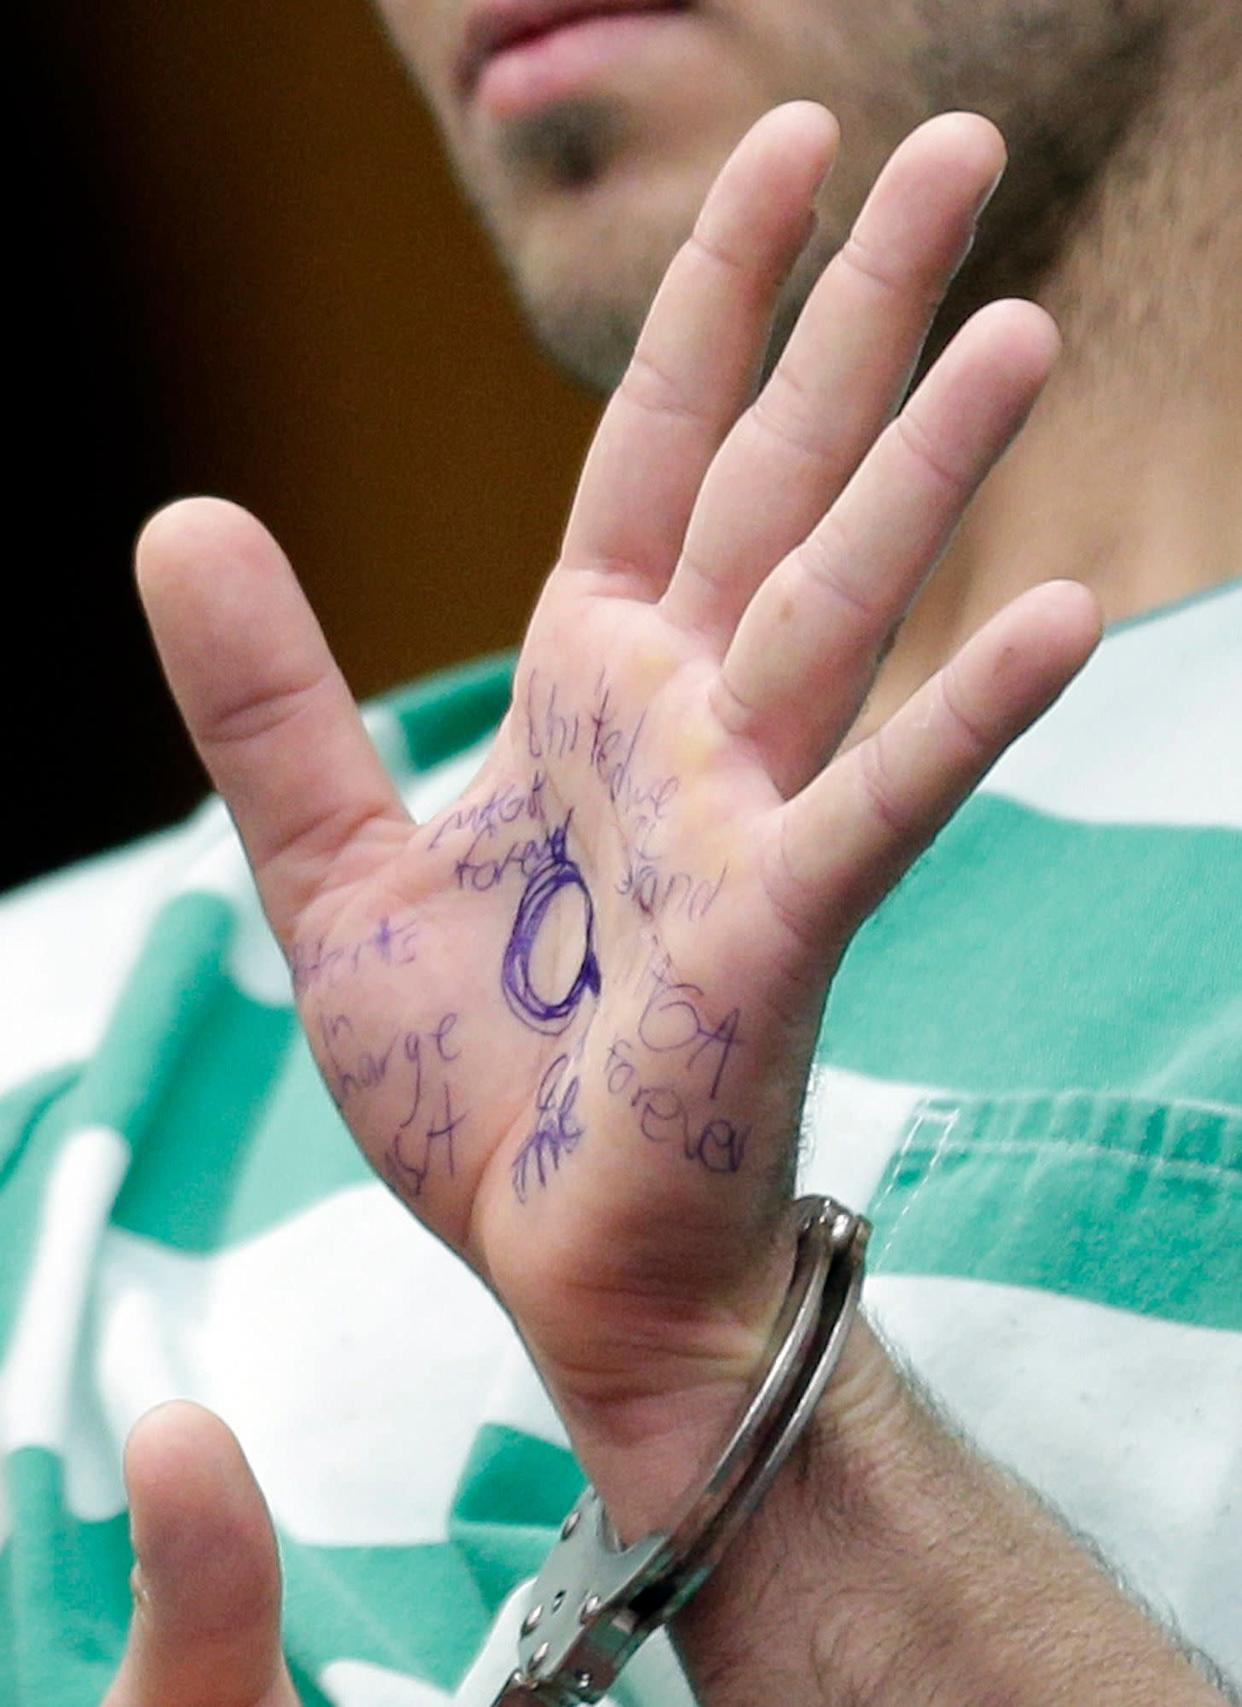 Anthony Comello's hand was covered in pro-Trump messages penned with blue ink. (Photo: ASSOCIATED PRESS)